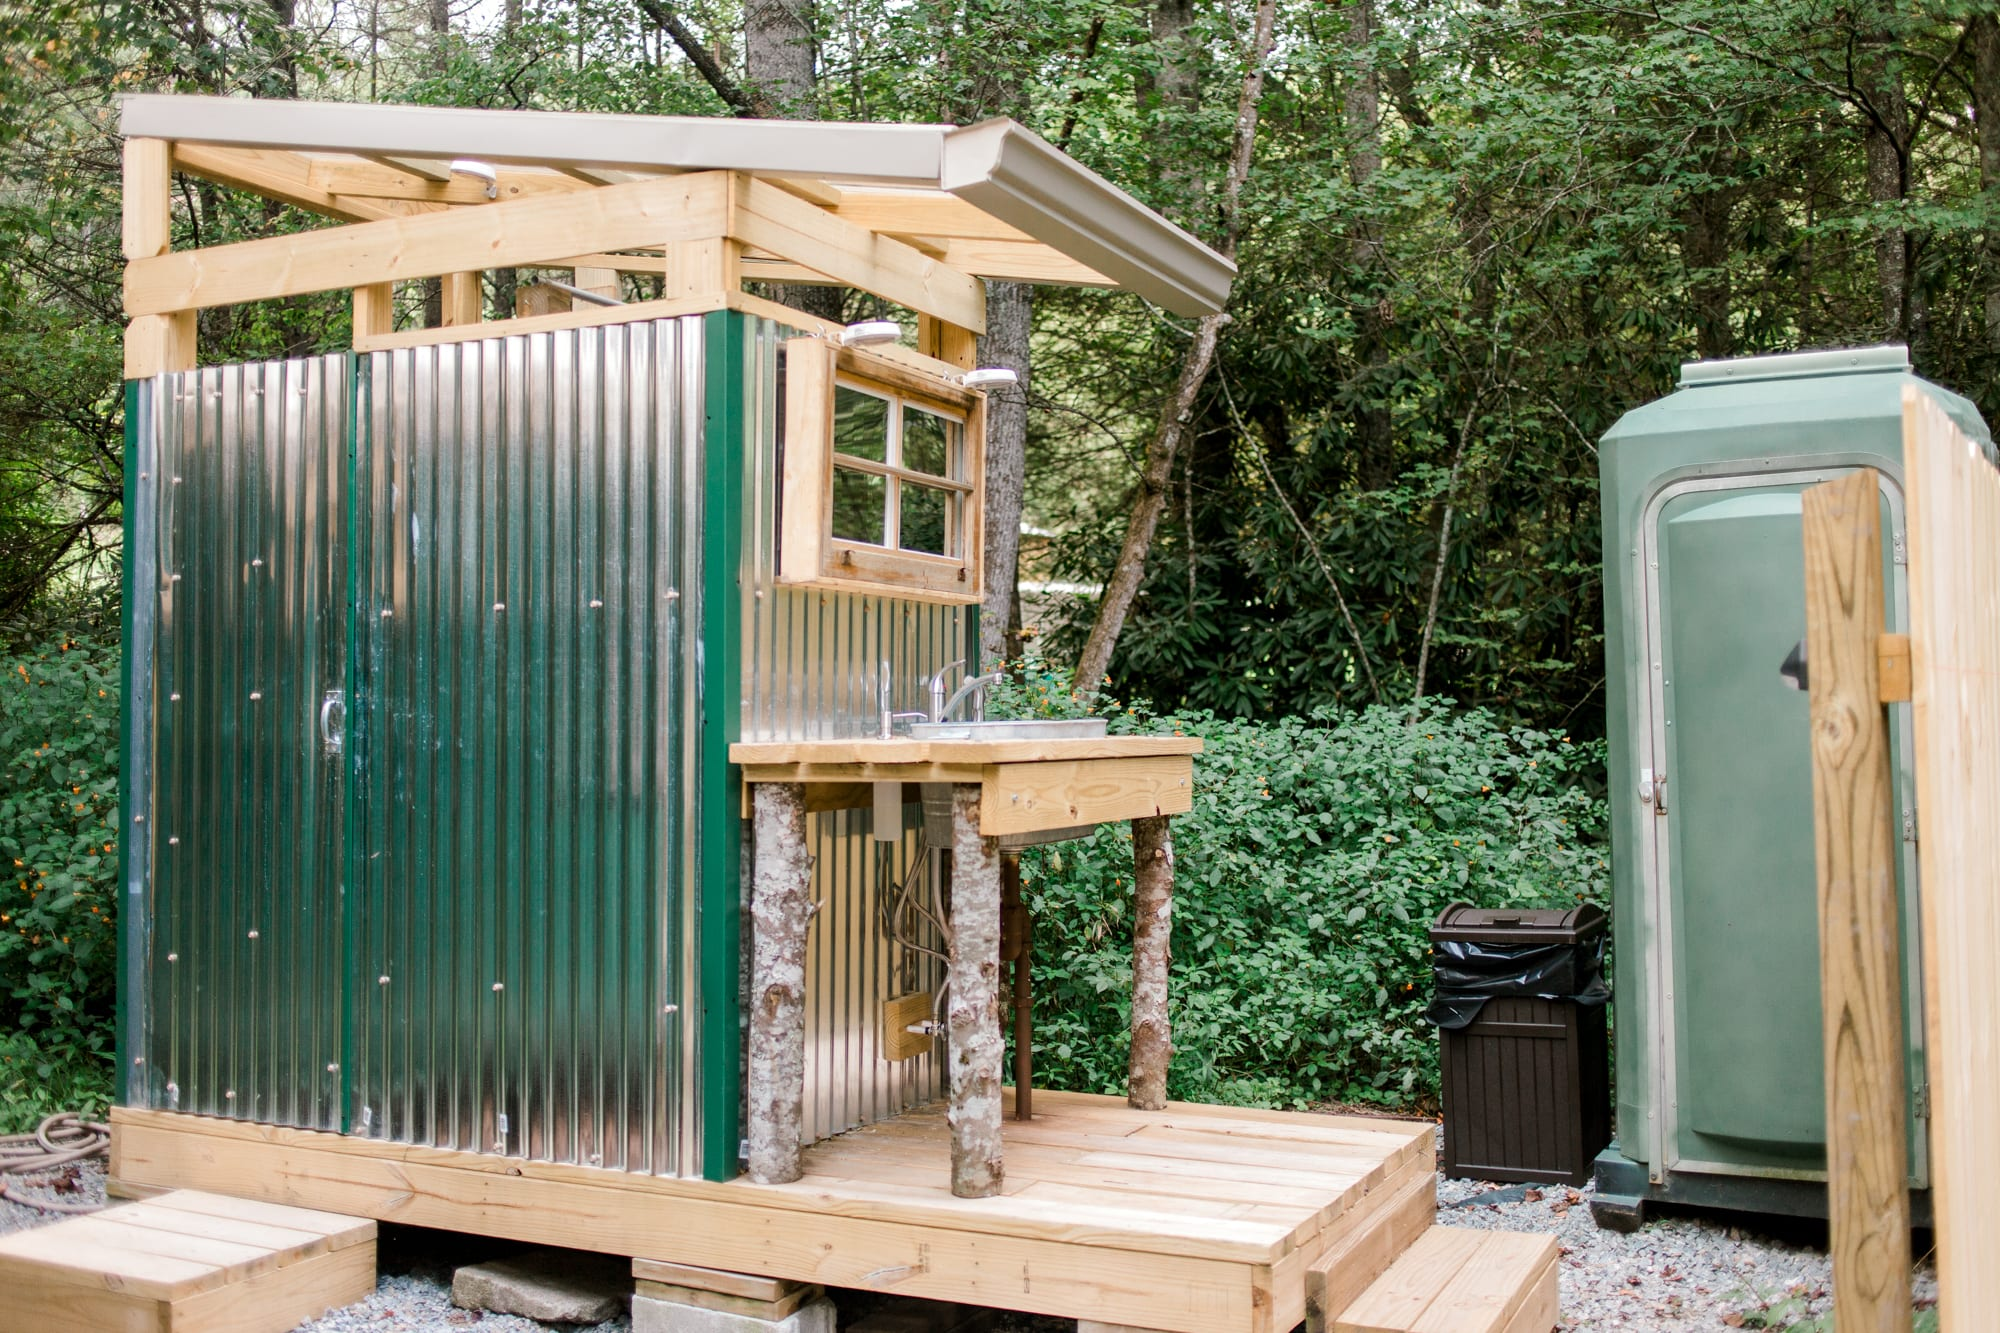 5 Toilets That Will Elevate Your Campsite Hipcamp Journal Stories For Hipcampers And Our Hosts